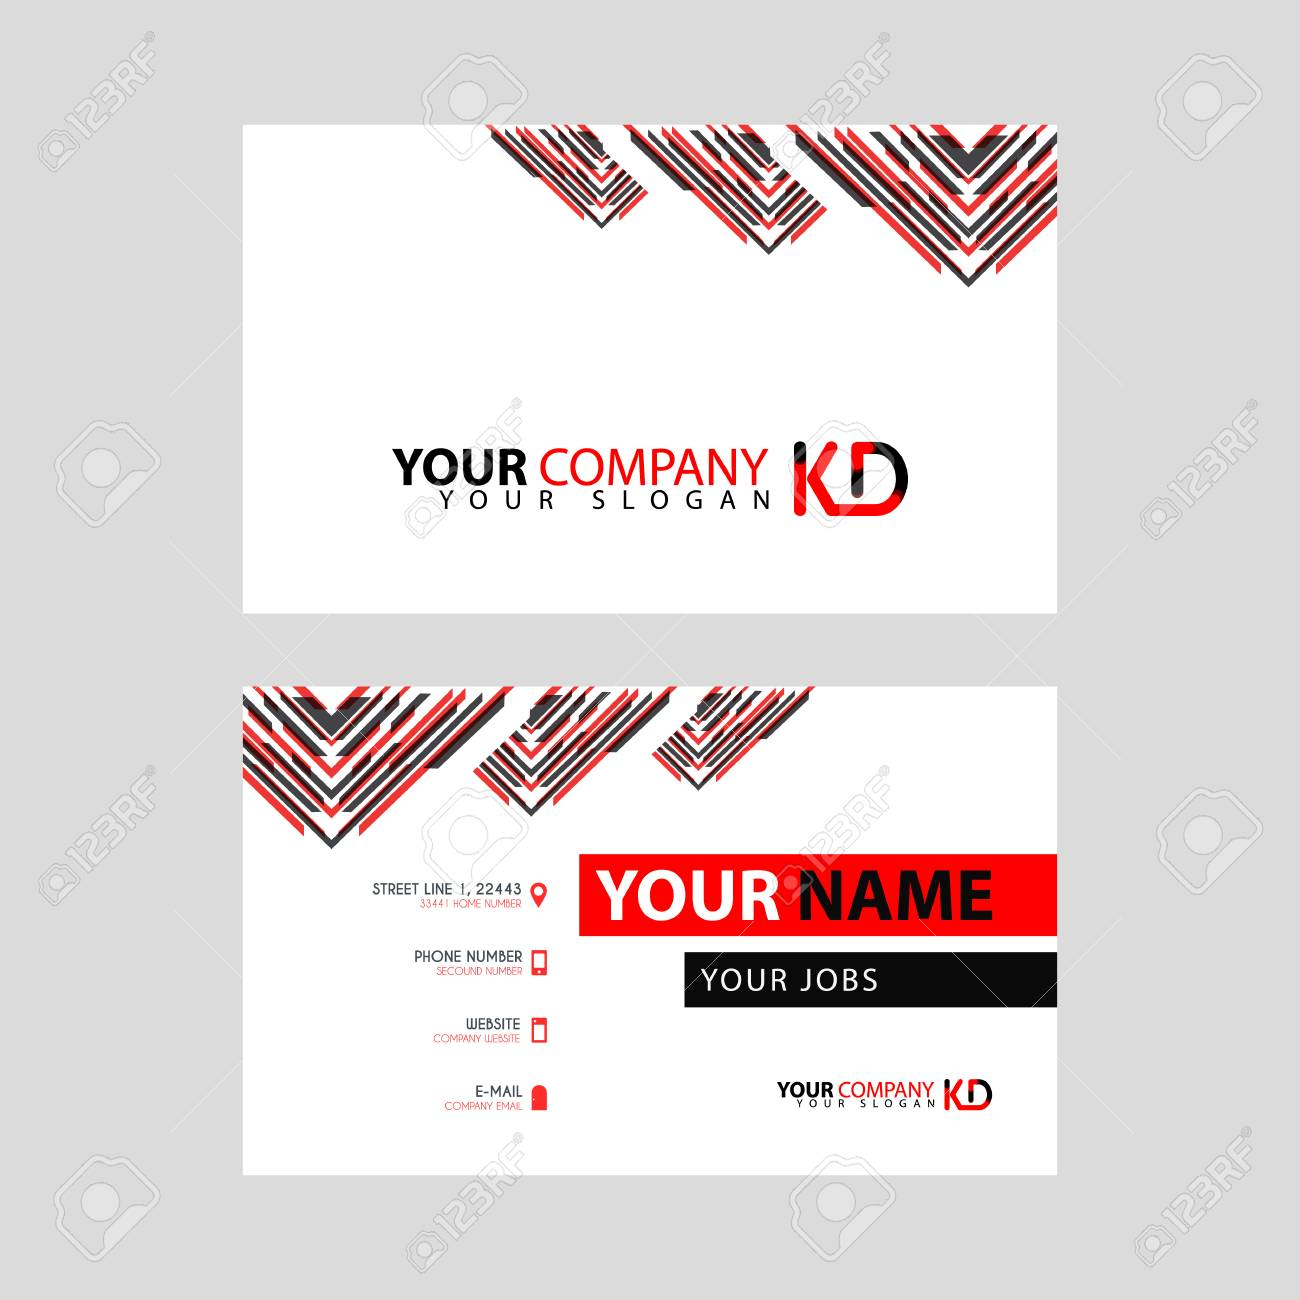 The new simple business card is red black with the KD logo Letter bonus and horizontal modern clean template vector design. - 106310137